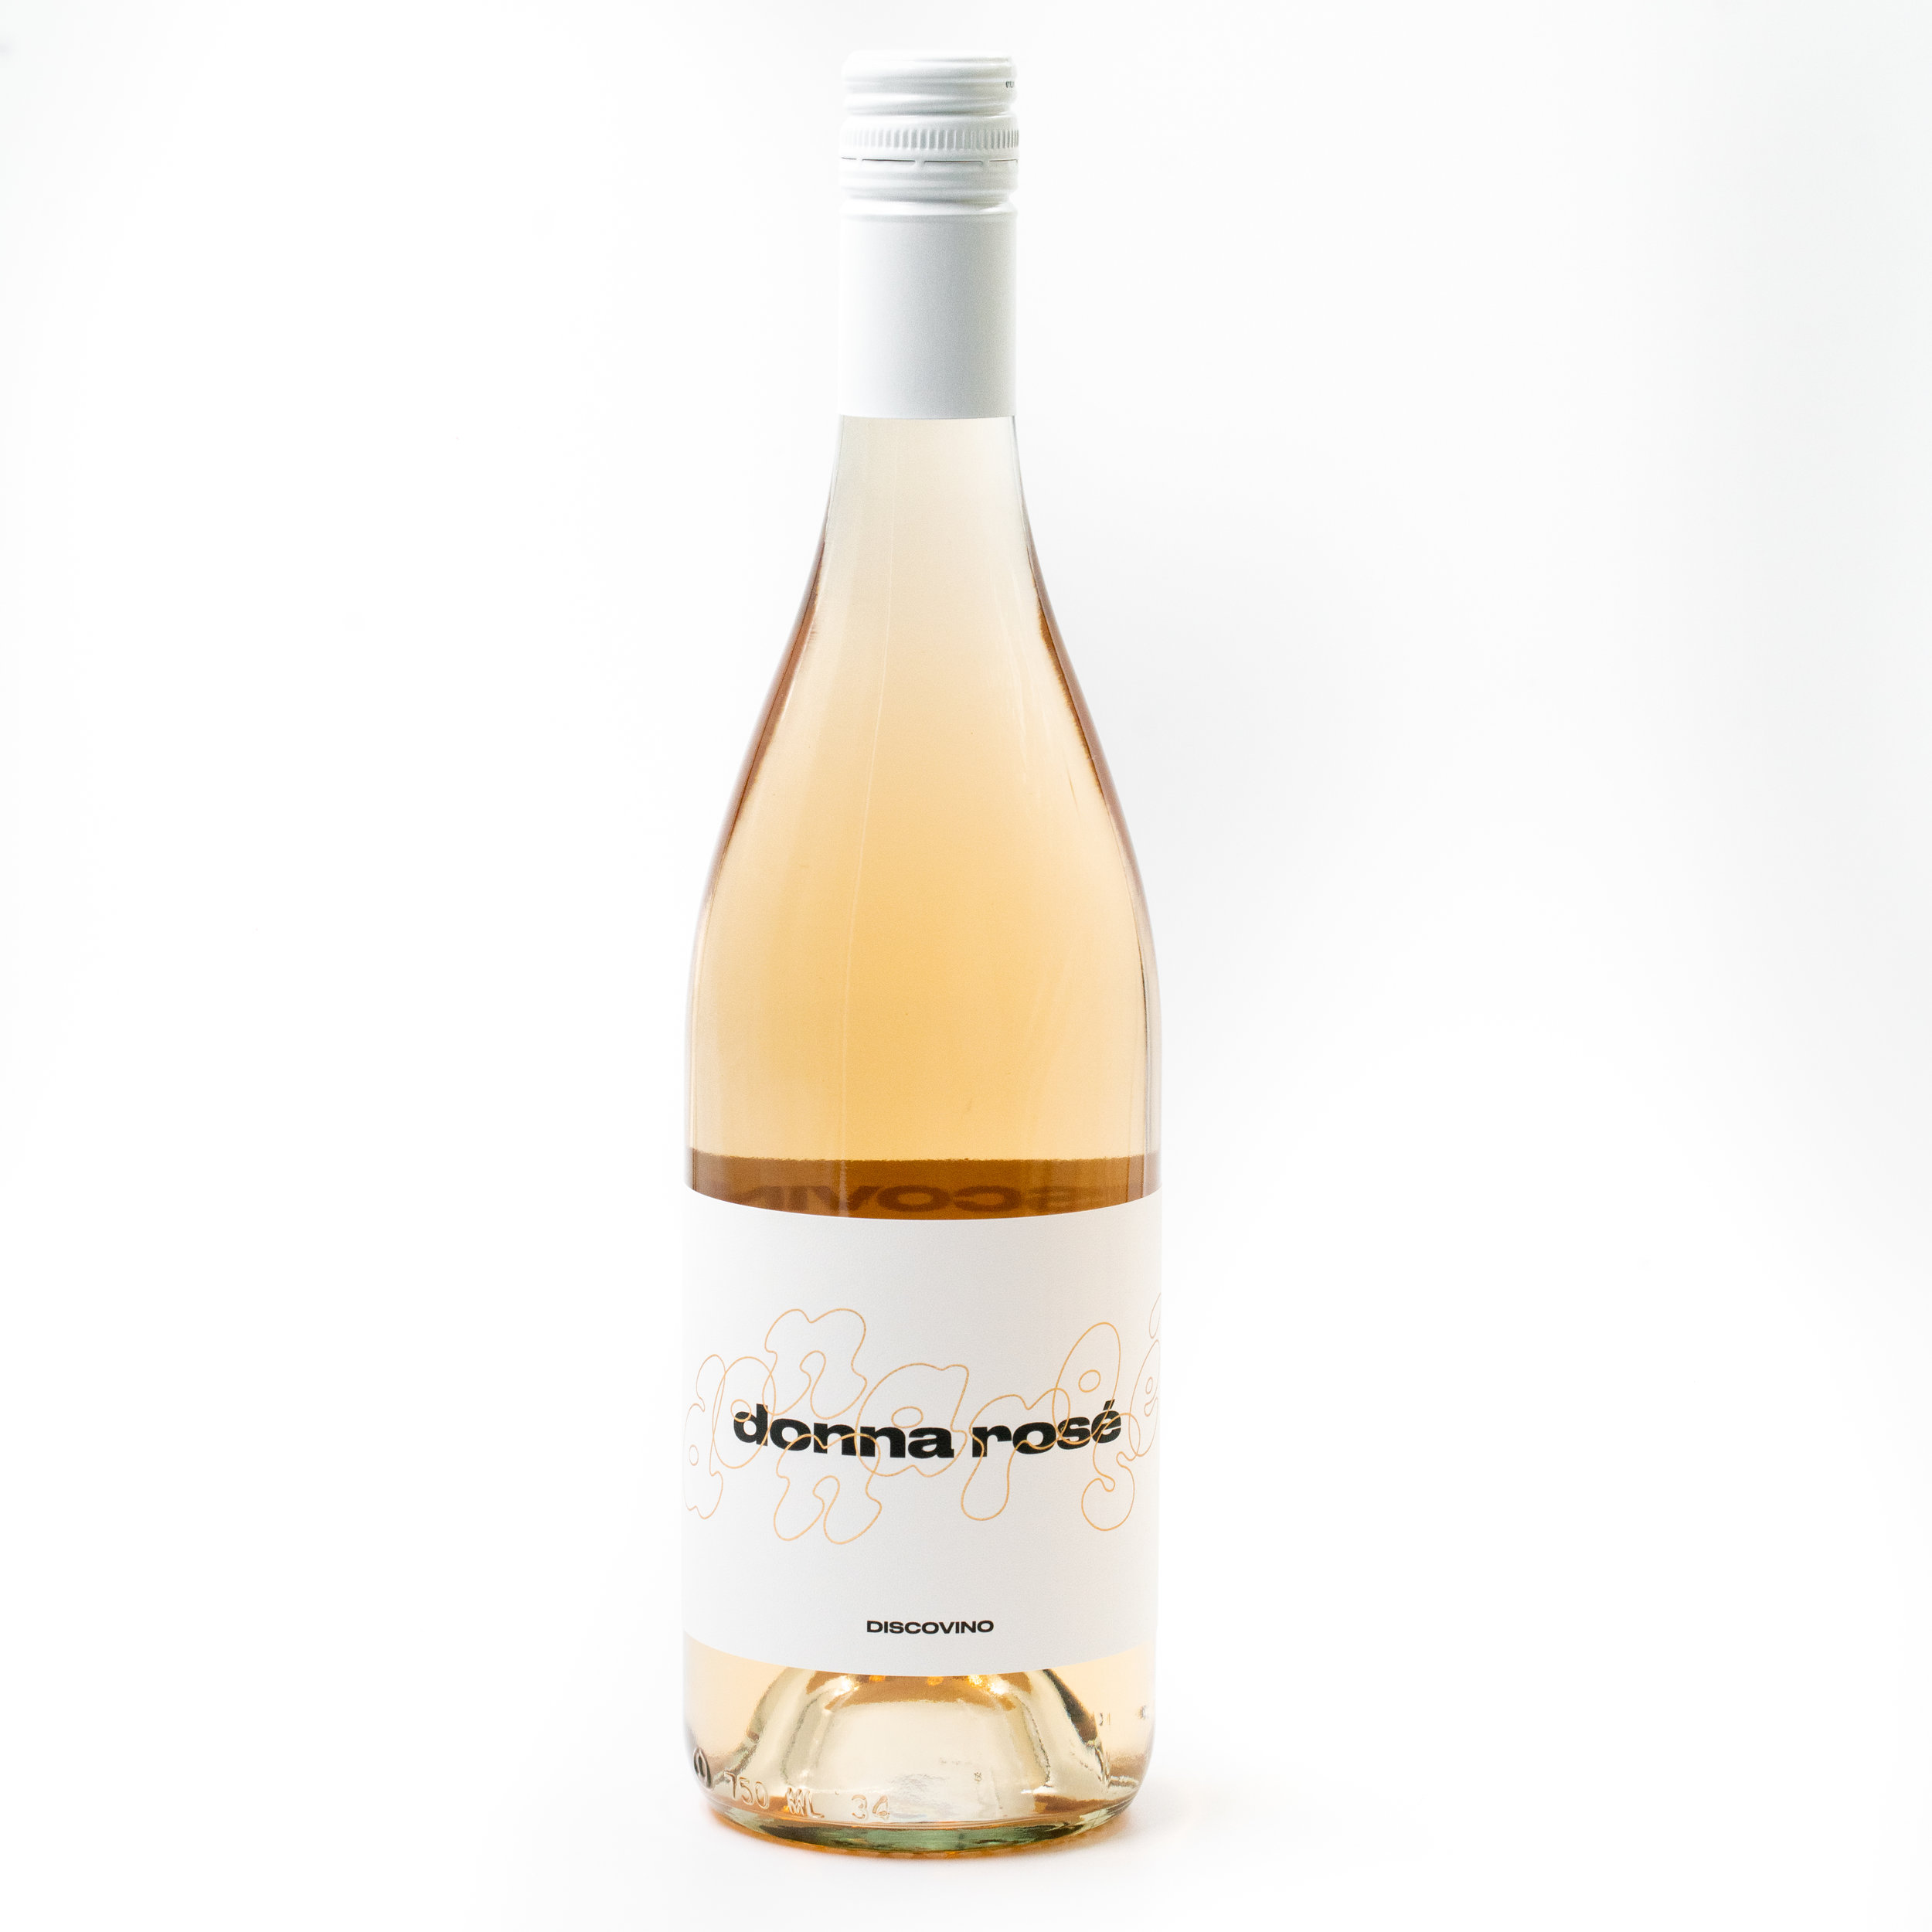 Discovino Donna Rosé, 50% Sangiovese 50% Syrah  Corsican-inspired rosé from Paso Robles, CA. A perfumed, melon and strawberry-inflected quencher landing somewhere between the beach and the discothequé.